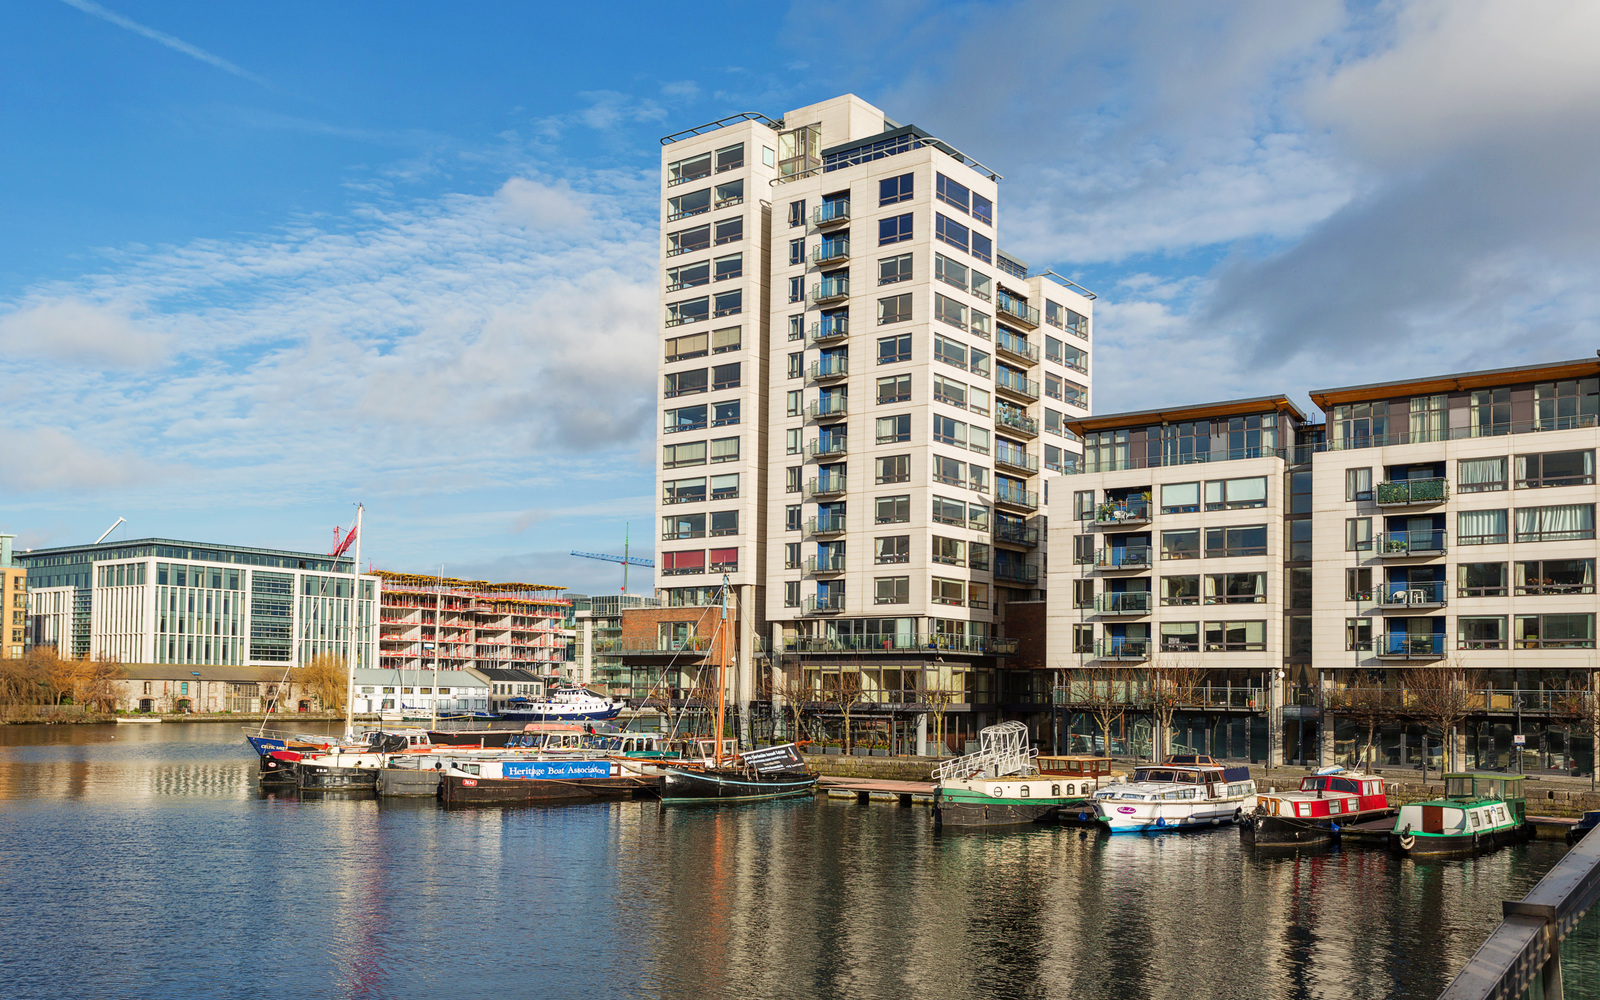 67 Millennium Tower, Grand Canal Dock, Dublin 4